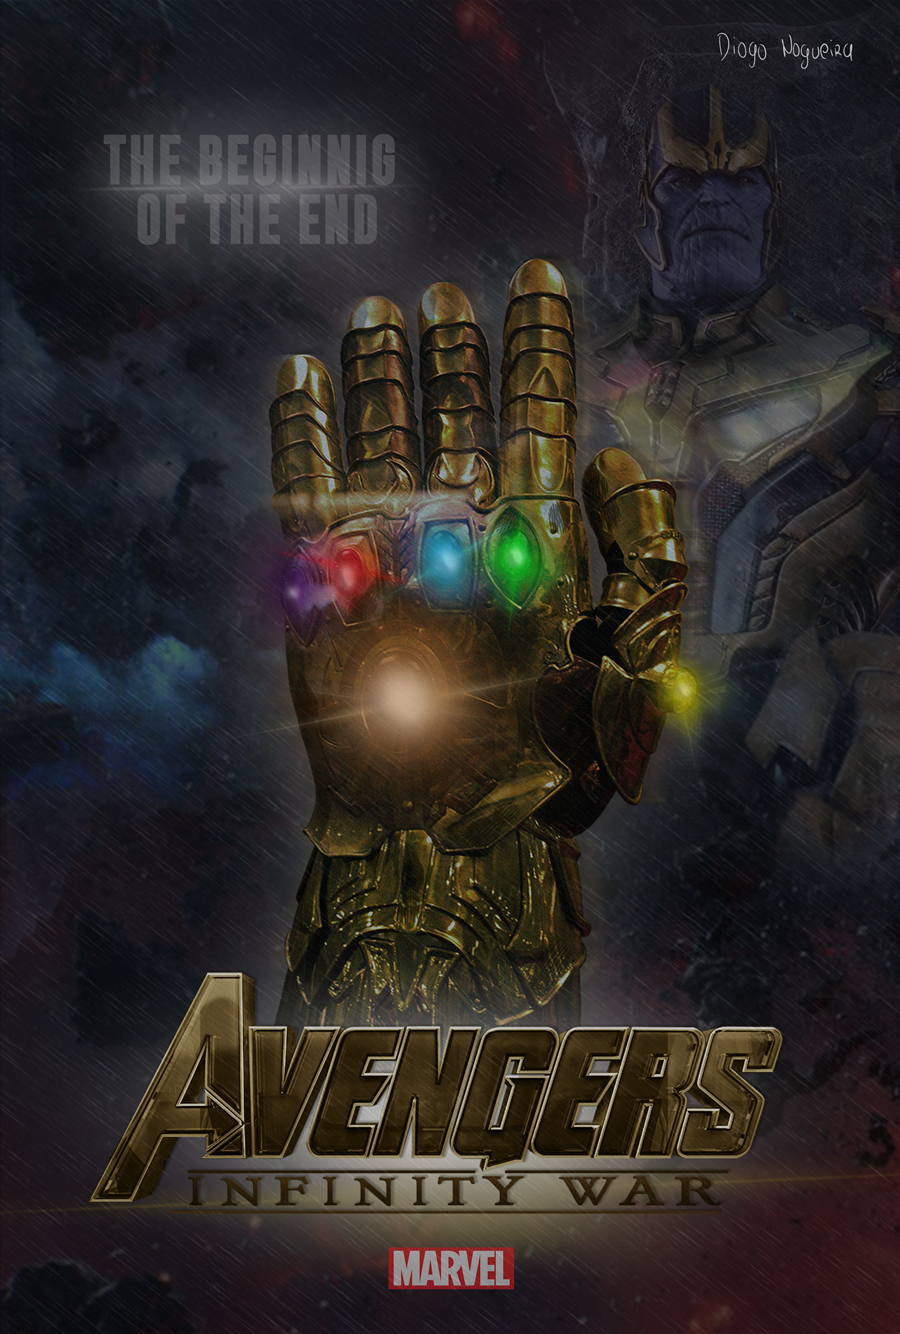 Thanos – Avengers: Infinity War by diogosnog on DeviantArt